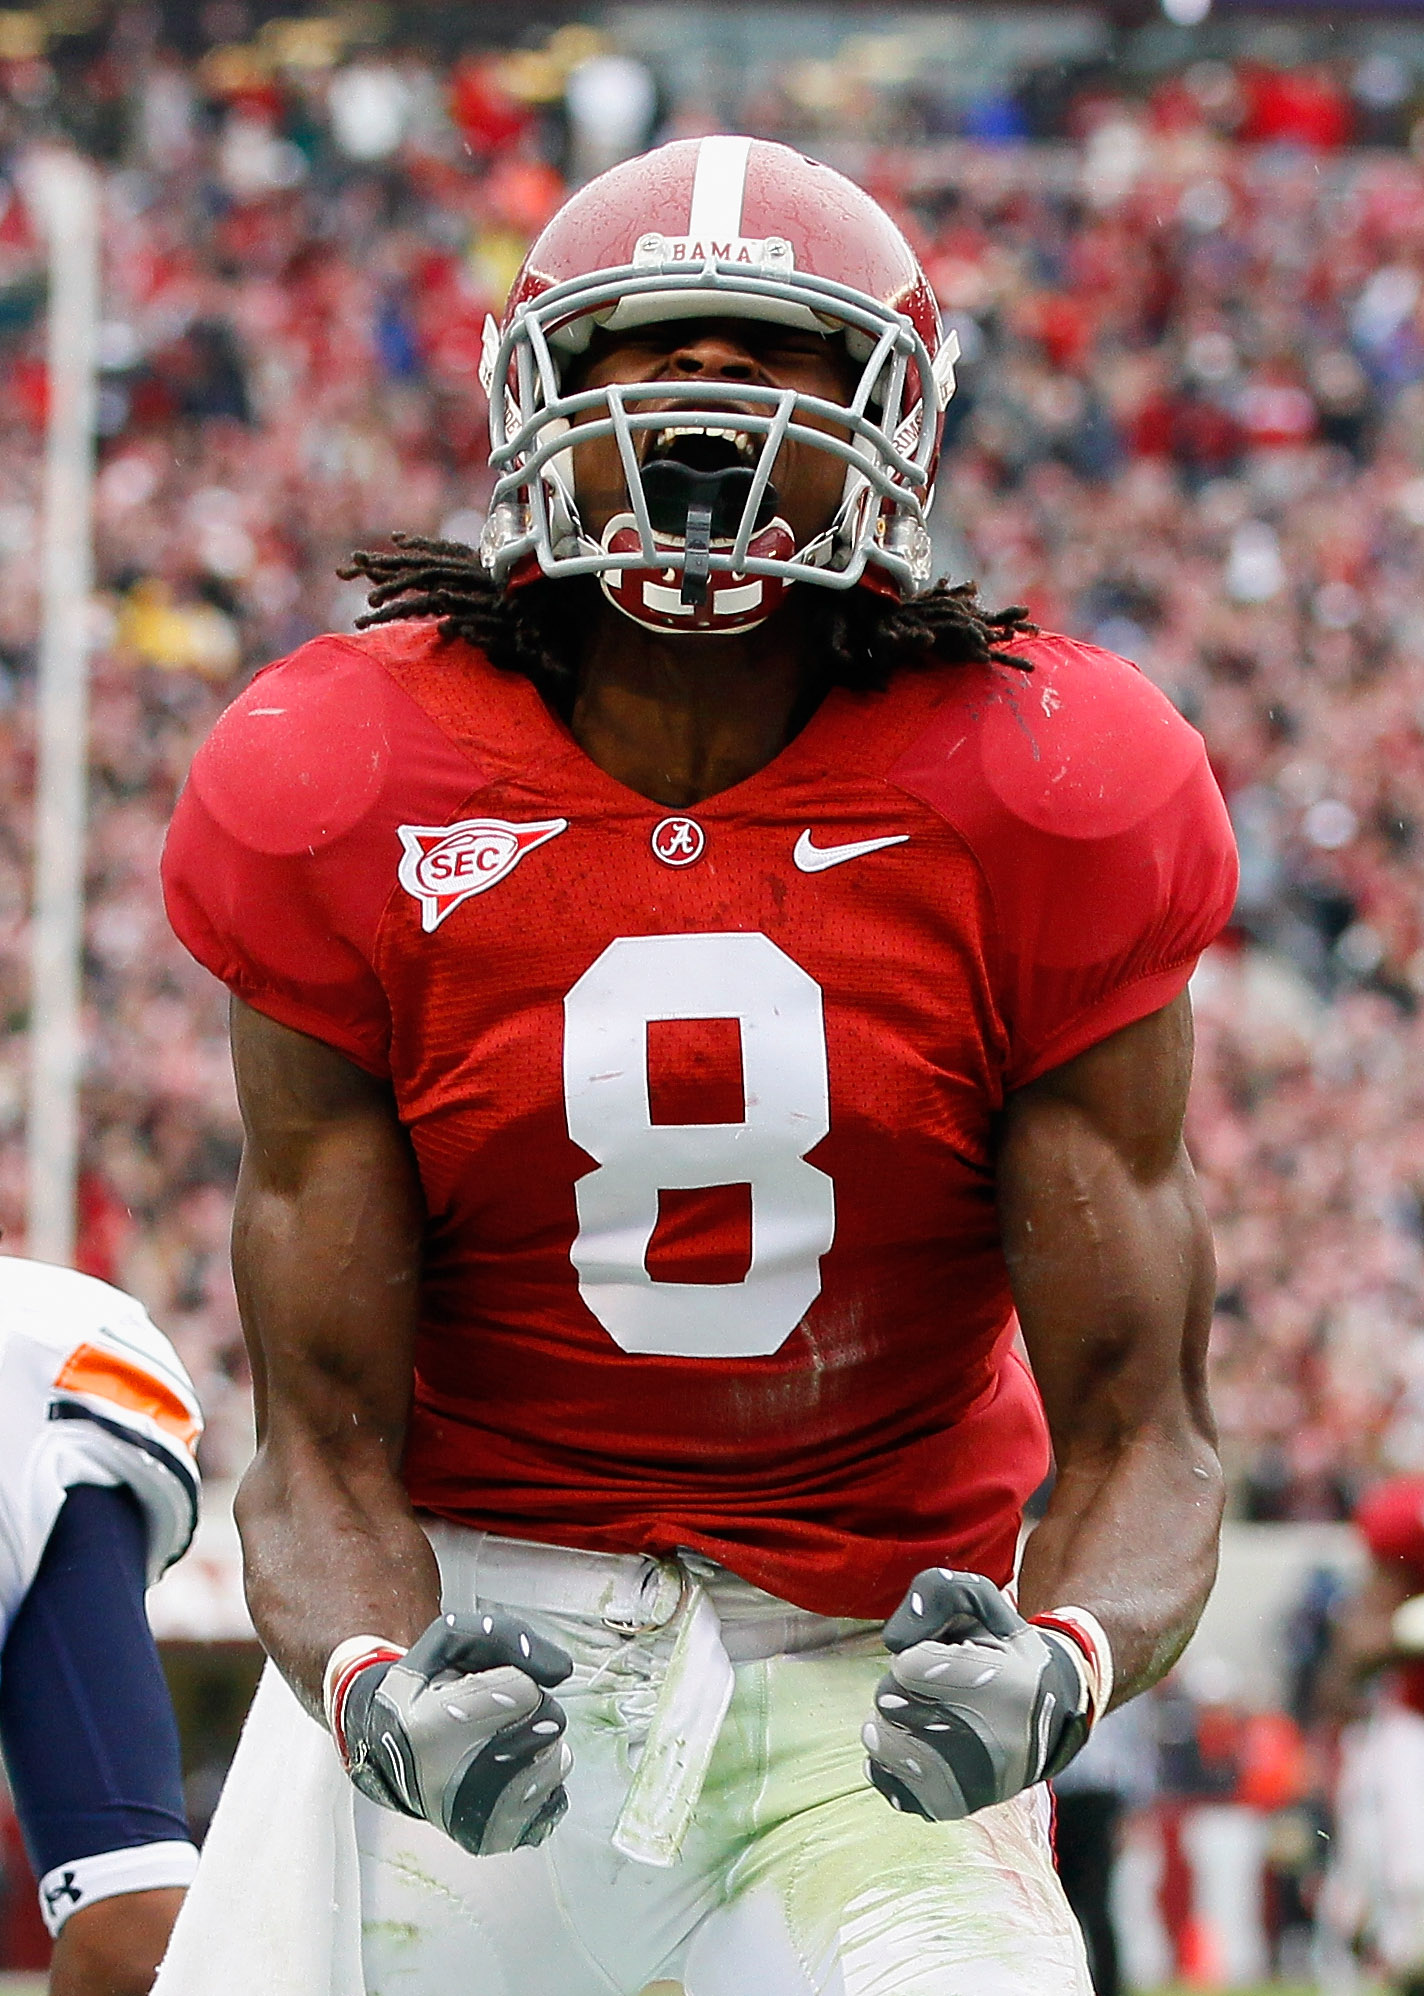 TUSCALOOSA, AL - NOVEMBER 26:  Julio Jones #8 of the Alabama Crimson Tide reacts after a long reception against the Auburn Tigers at Bryant-Denny Stadium on November 26, 2010 in Tuscaloosa, Alabama.  (Photo by Kevin C. Cox/Getty Images)